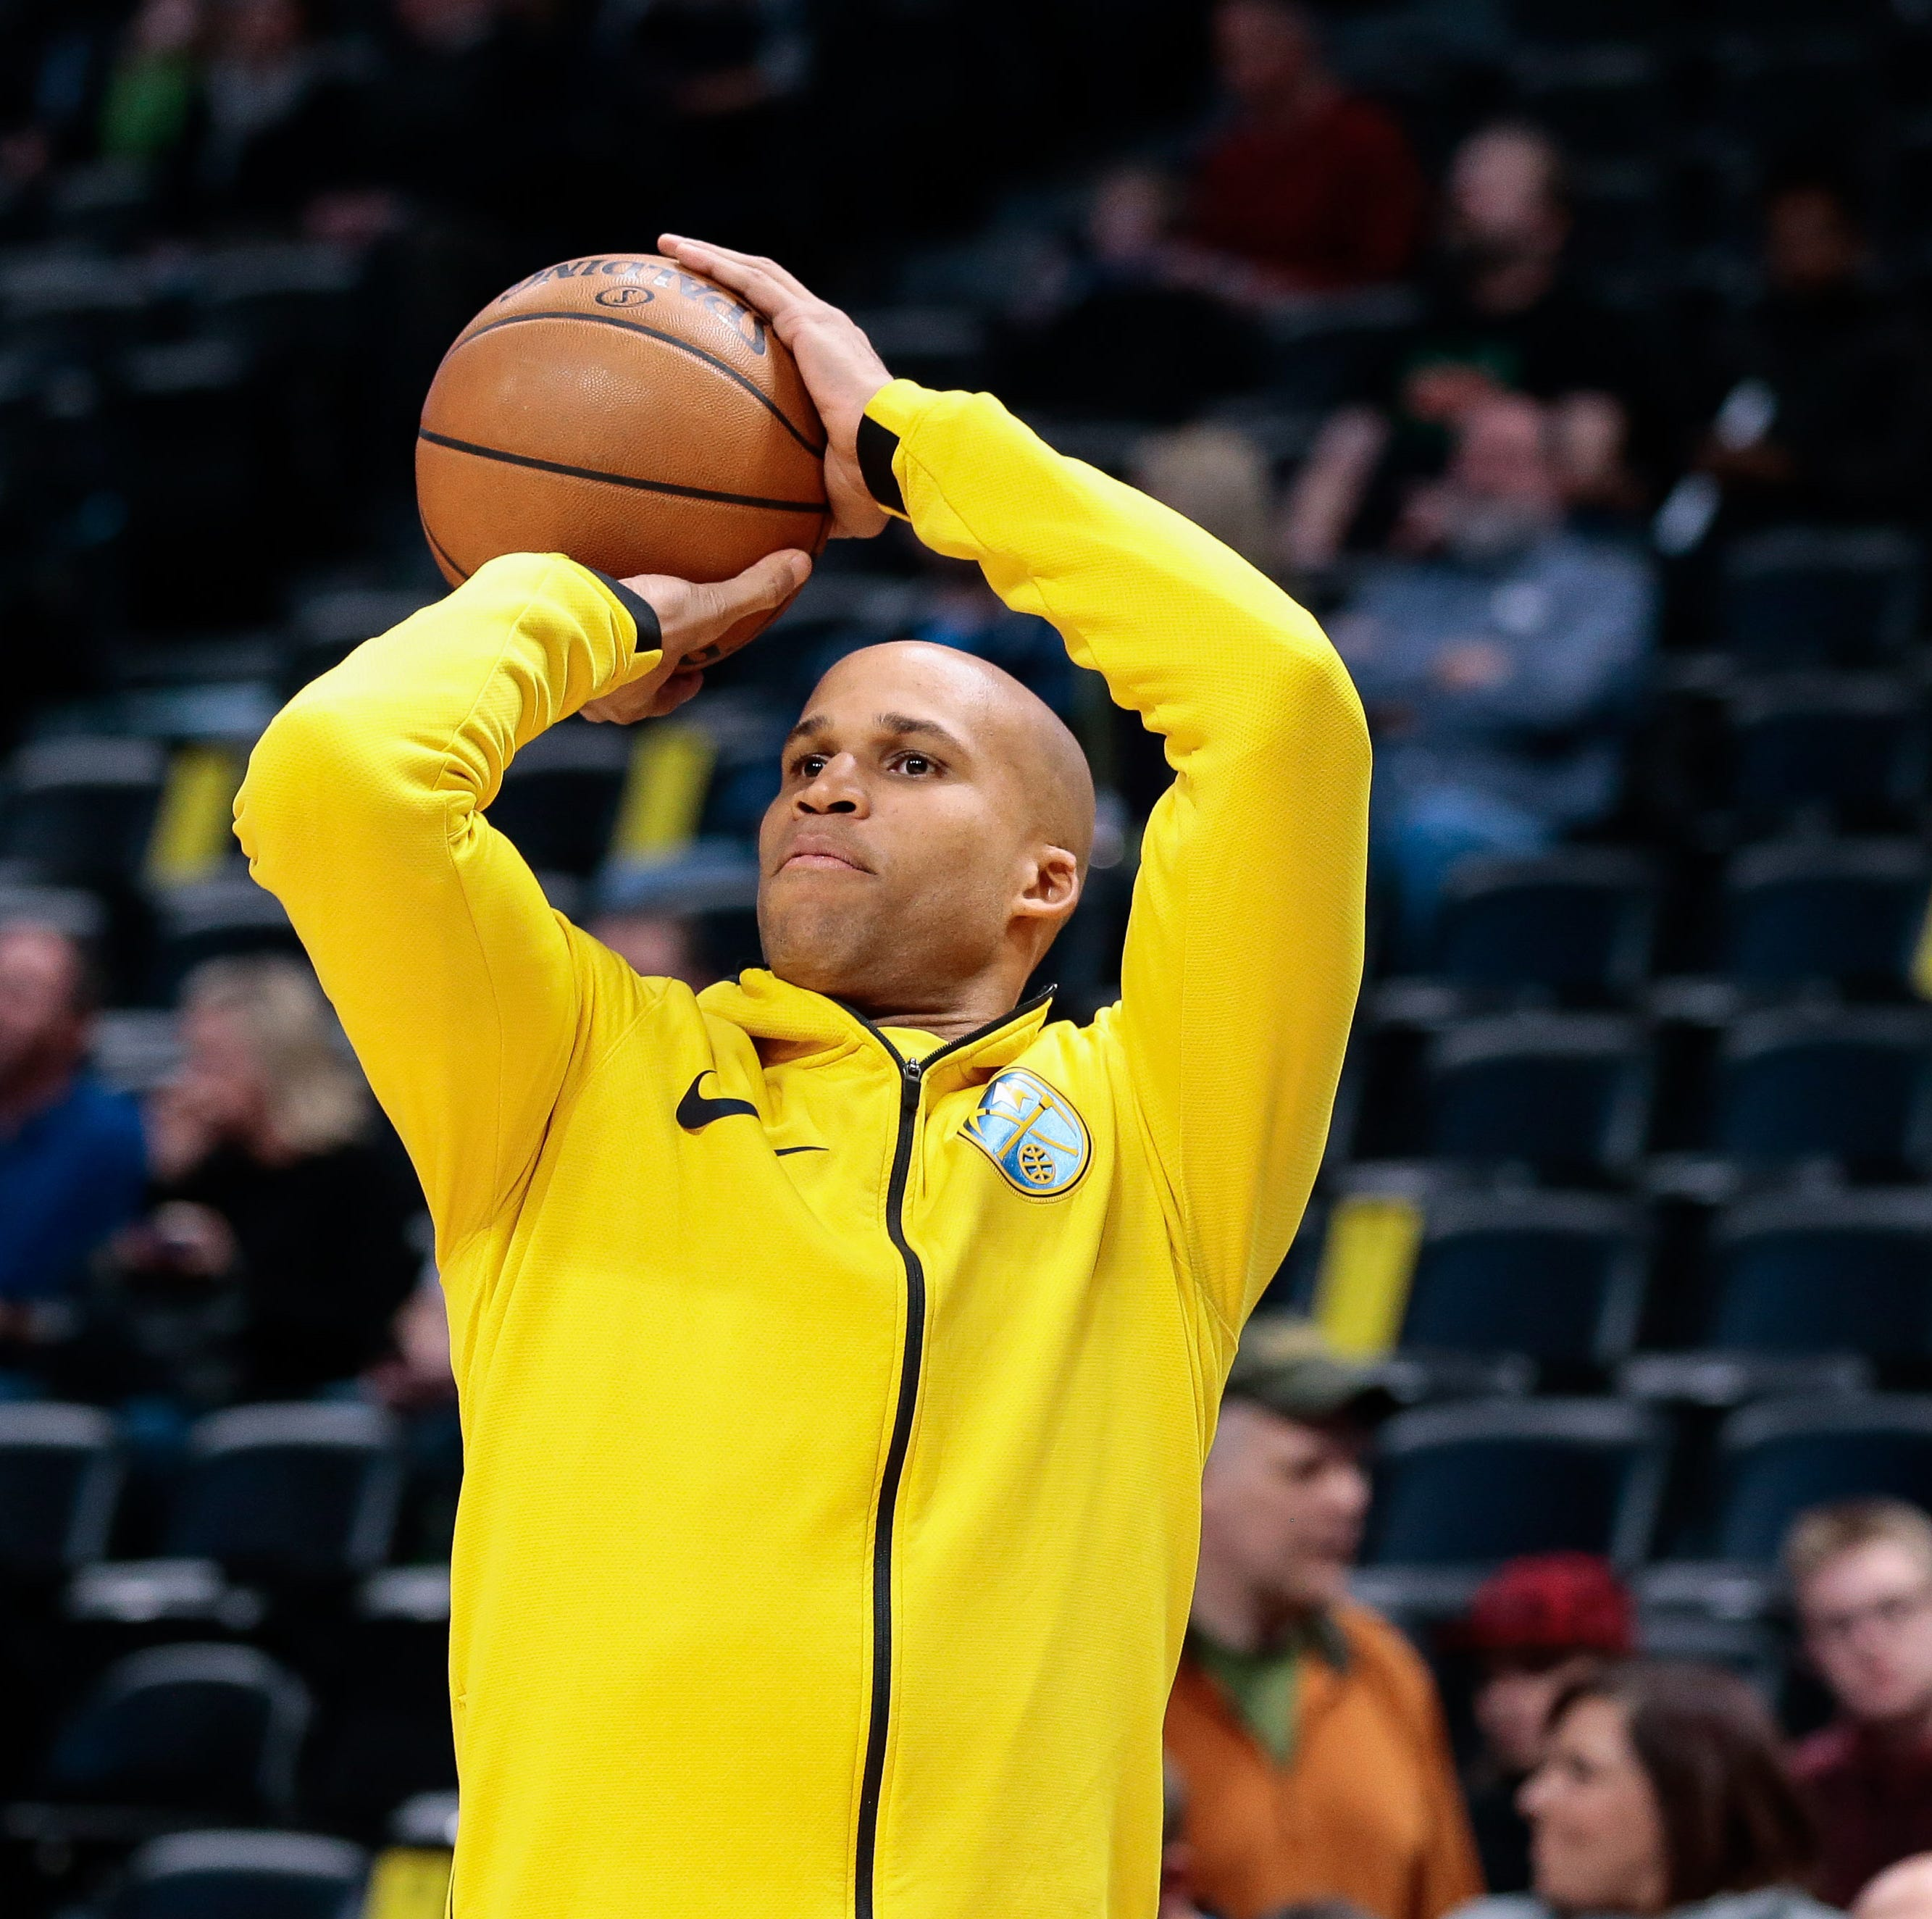 Father of ex-Arizona Wildcats star Richard Jefferson killed in drive-by shooting